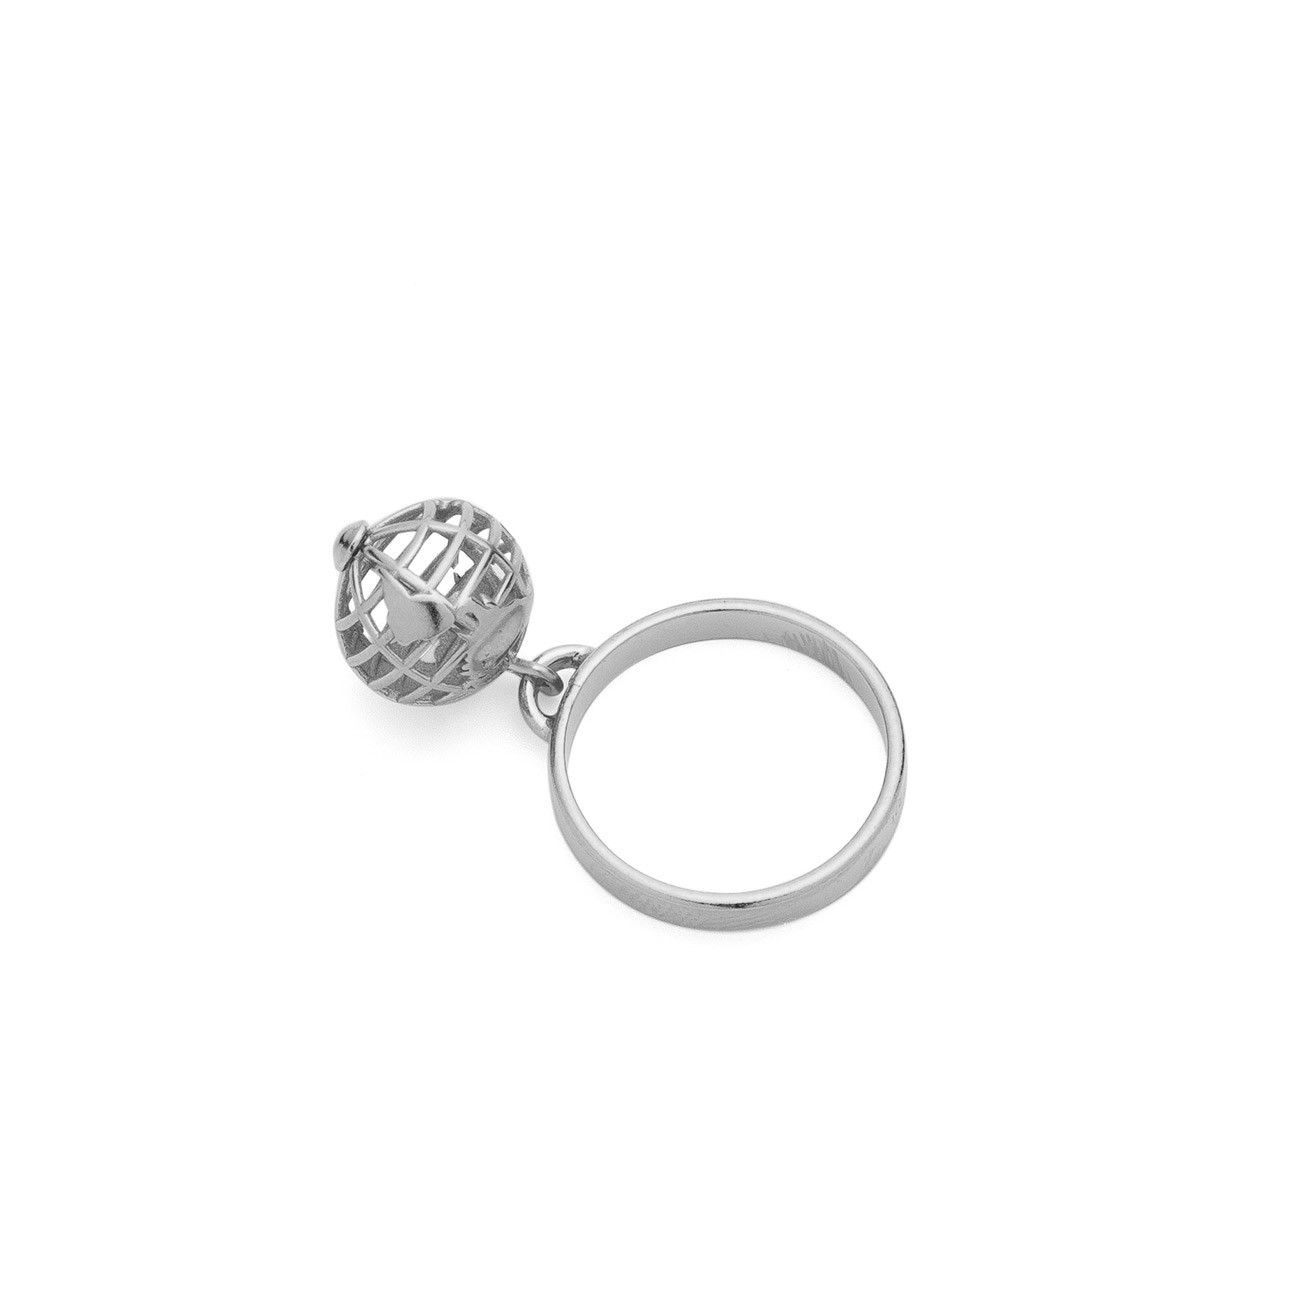 Planet earth ring, sterling silver 925